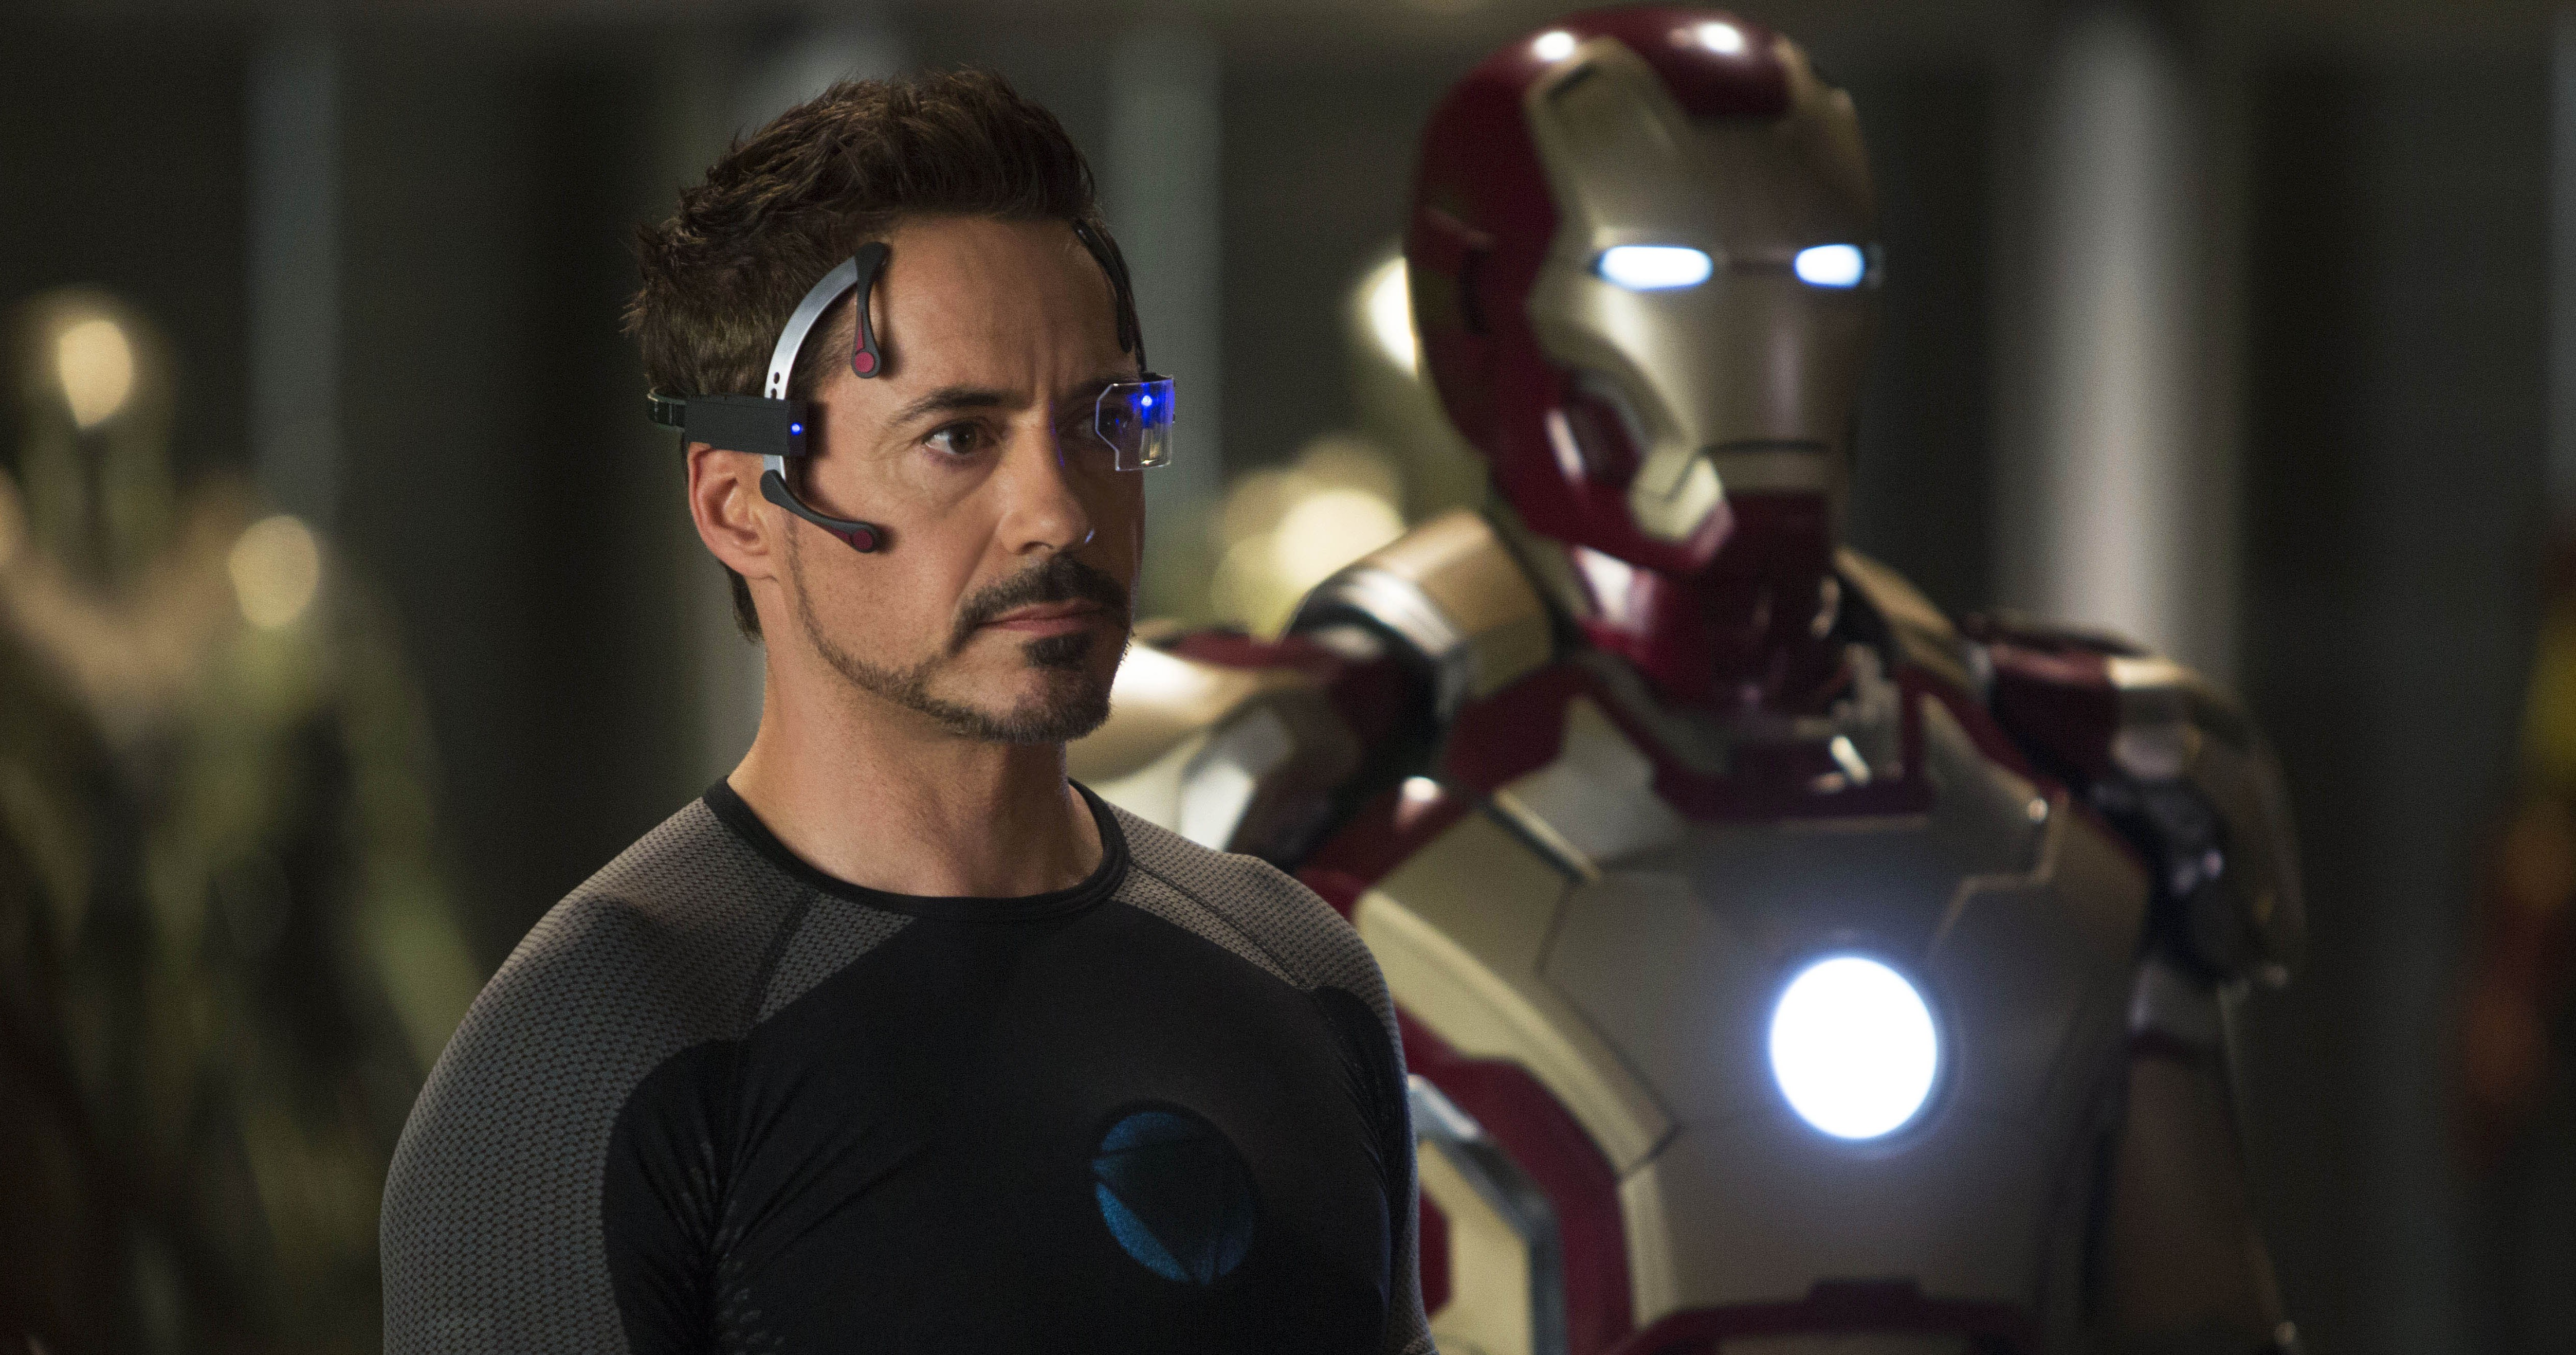 Iron Man 3 producer Kevin Feige: Tony Stark will be traumatised in new film